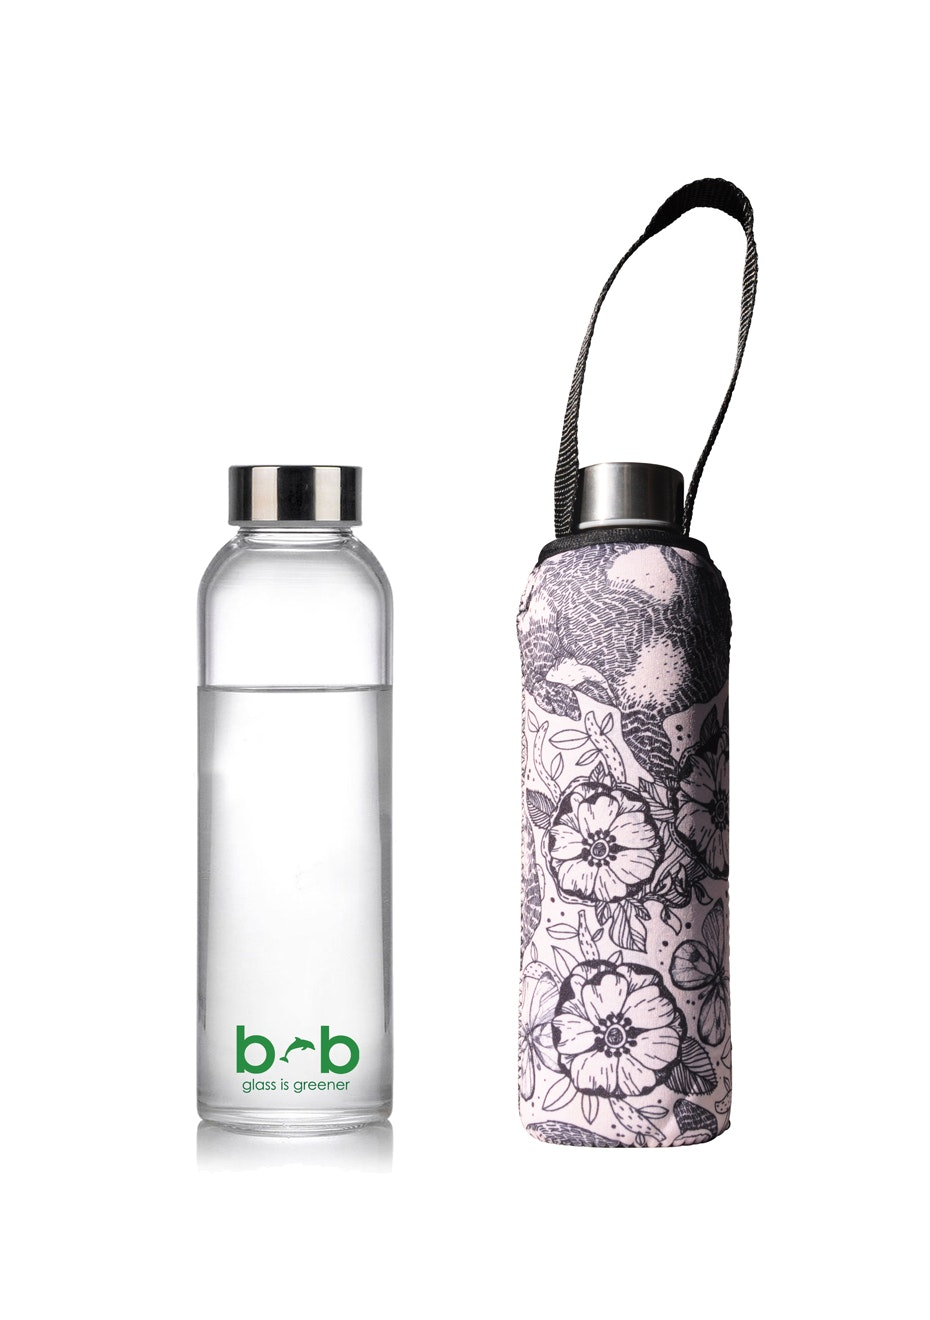 BBBYO - Glass Is Greener Bottle 570 ml + Carry Cover (Bounce Print) - 570 ml